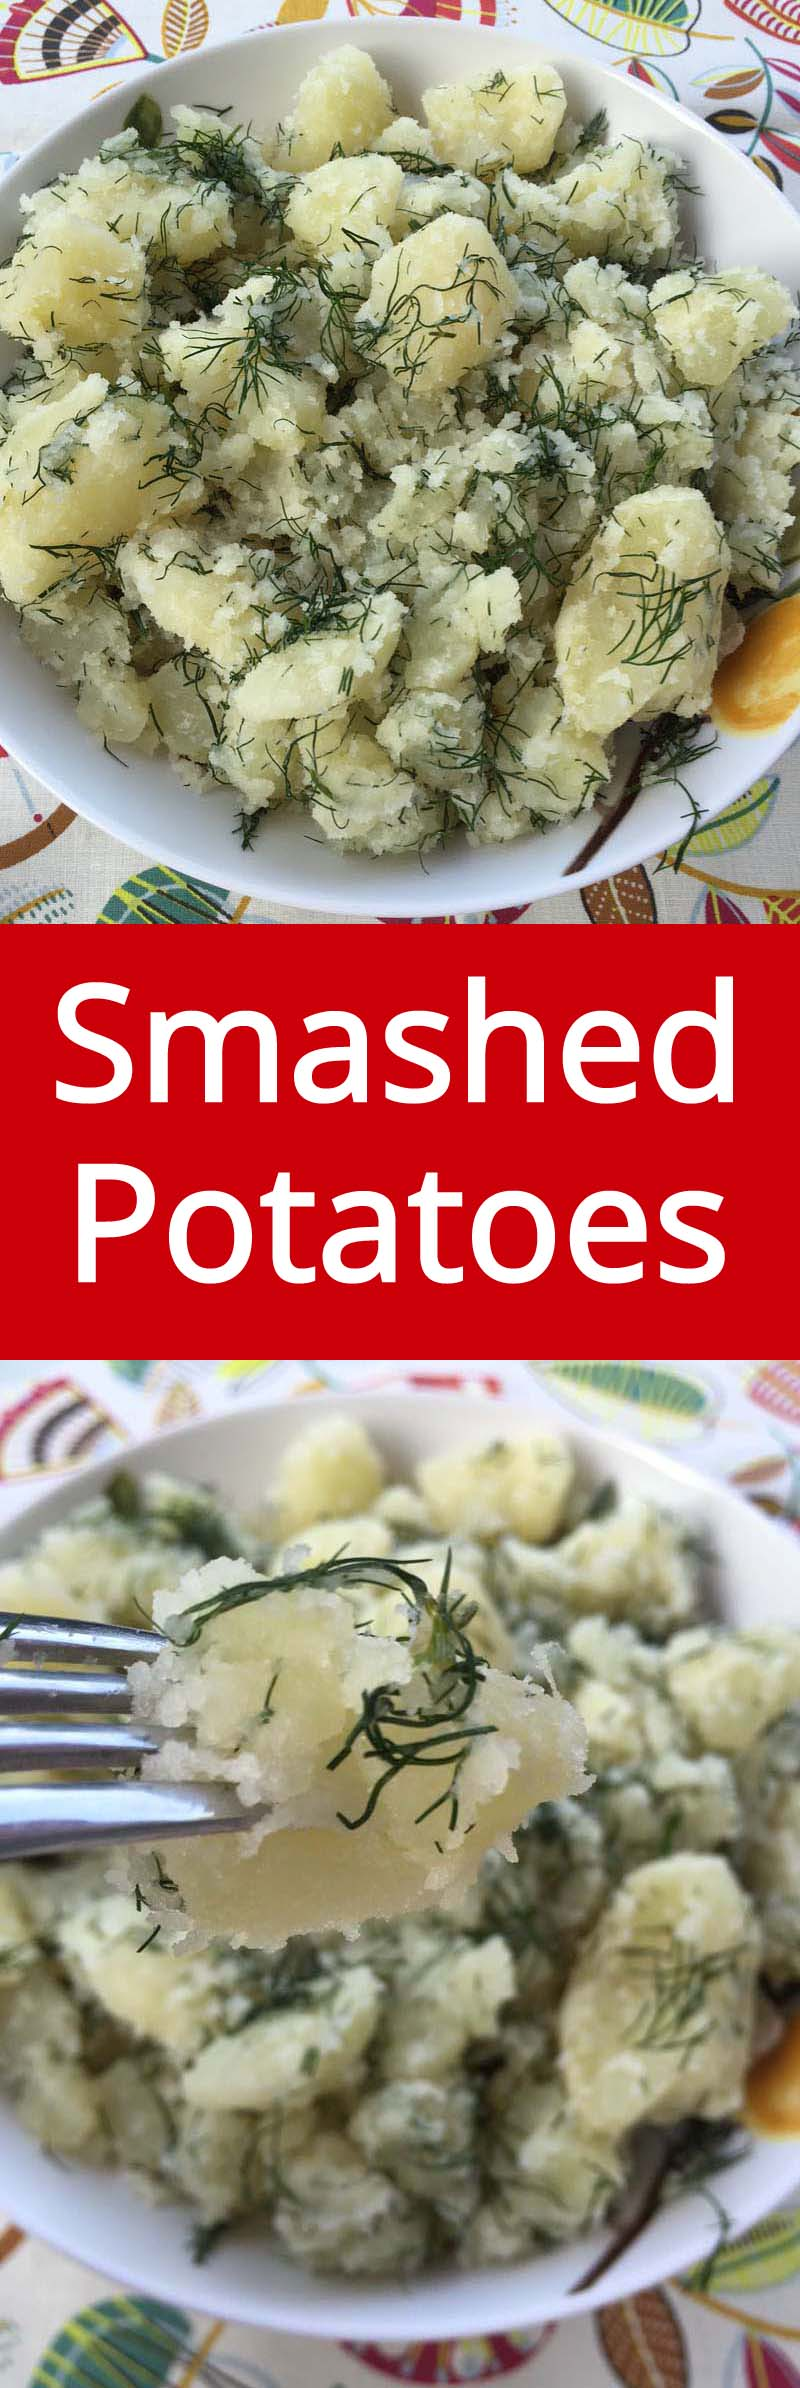 Easy Smashed Potatoes Recipe With Fresh Herbs - MOUTHWATERING! MelanieCooks.com